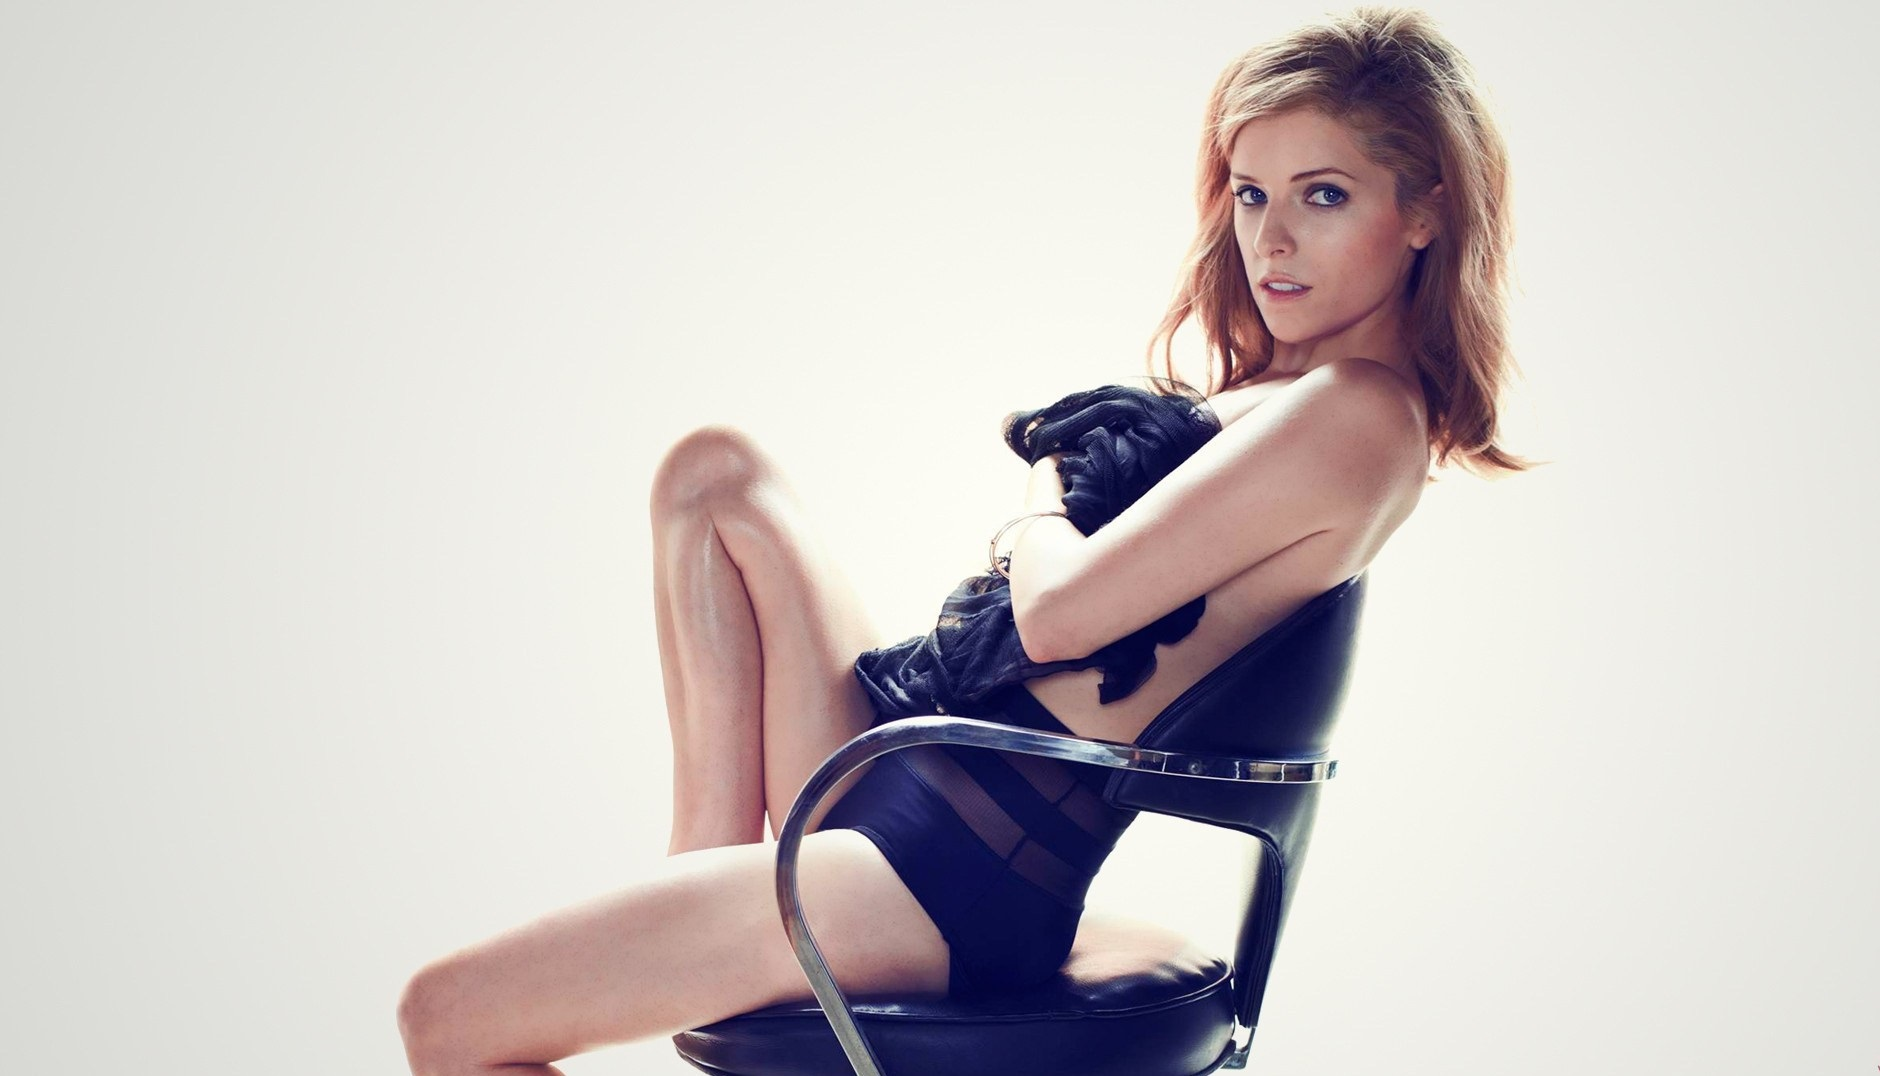 anna-kendrick-hot-images